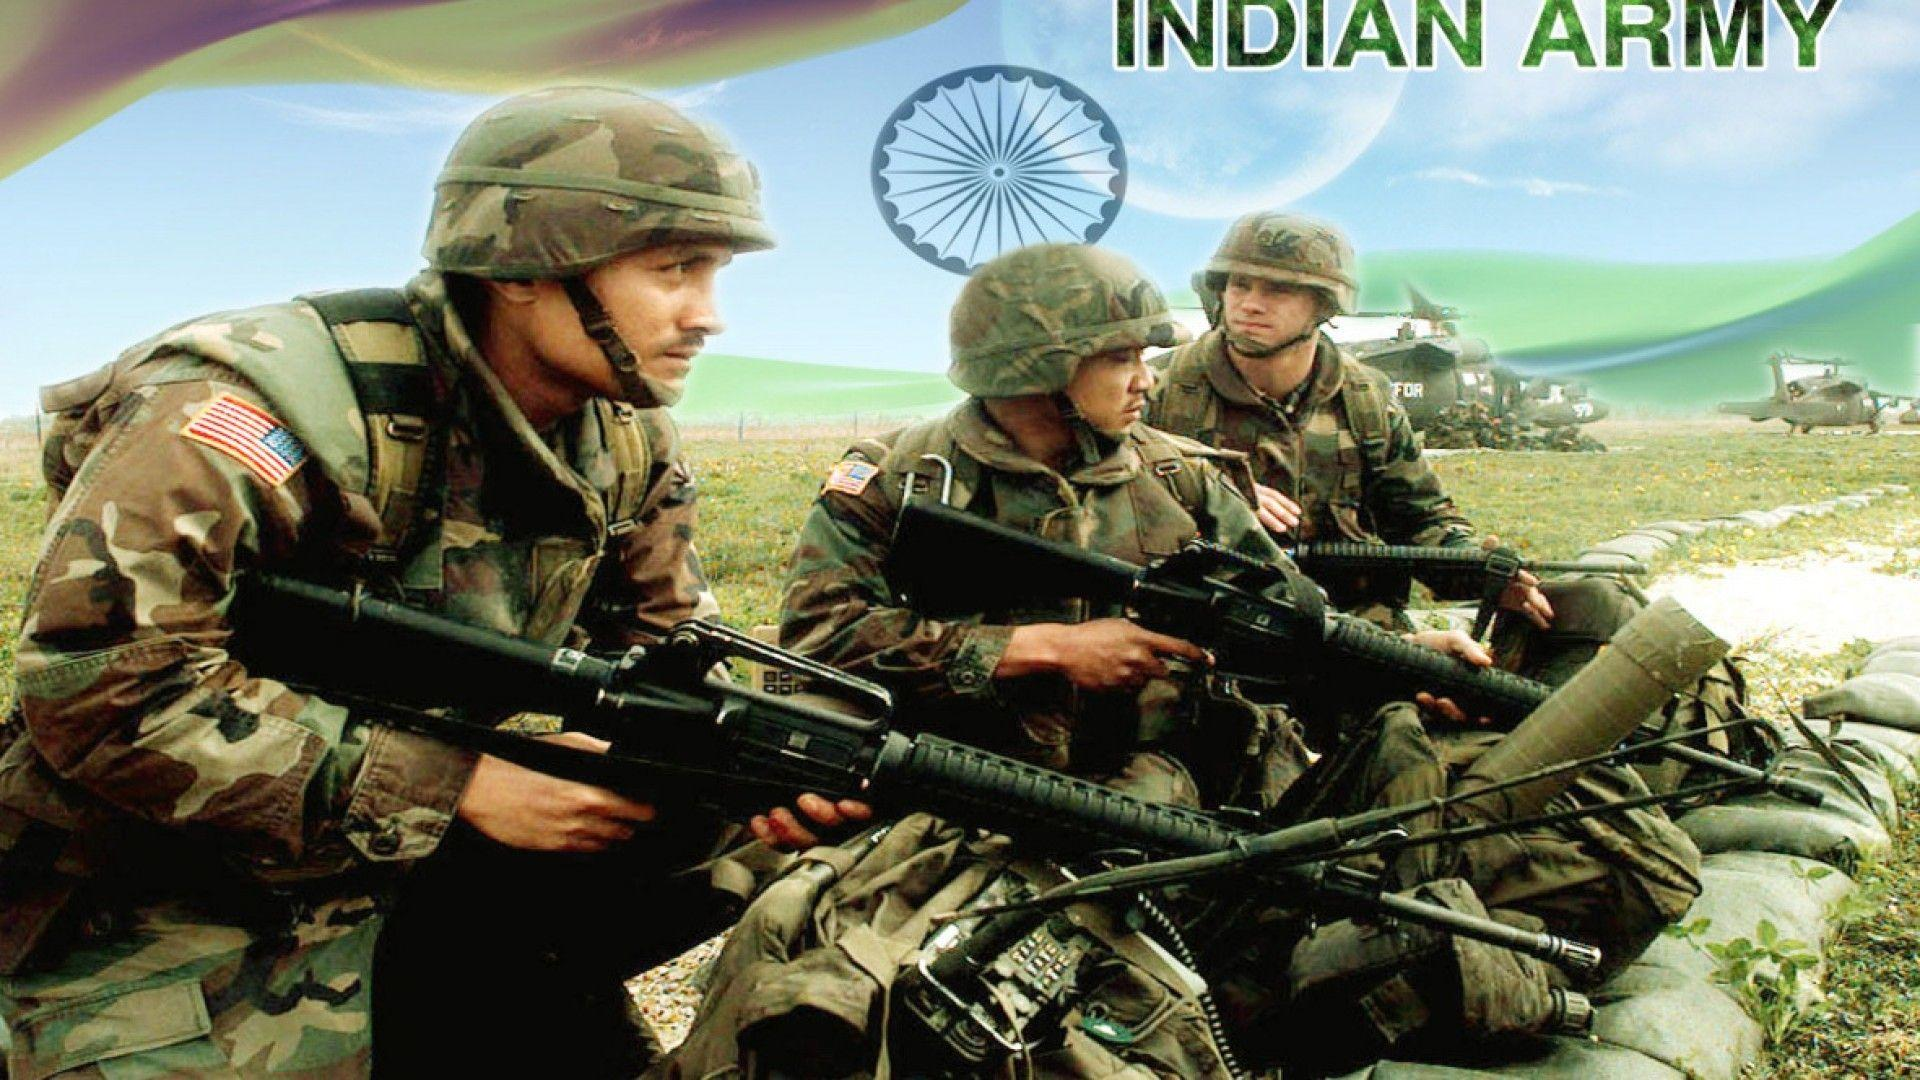 Indian Army Wallpapers Hd For Desktop Wallpaper Cave